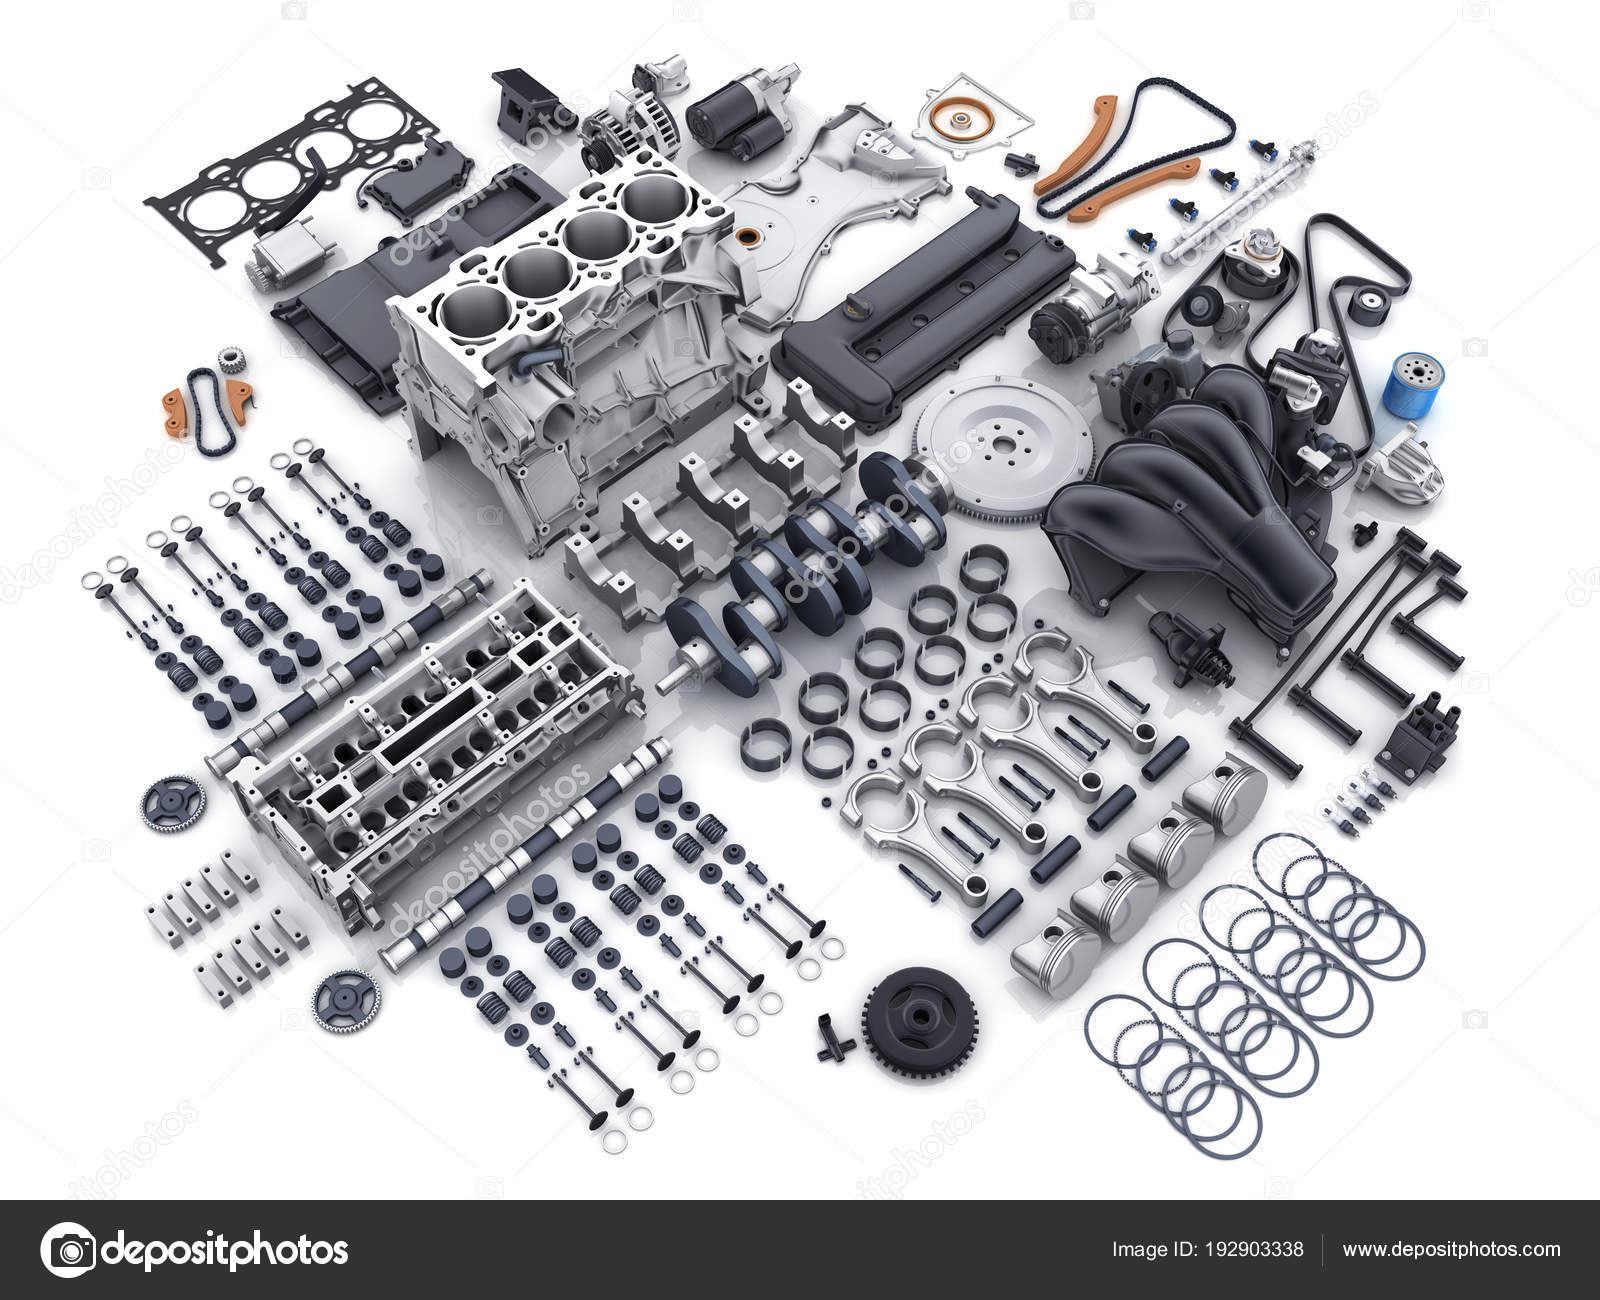 Car engine disassembled. many parts. — Stock Photo © Vladru #192903338